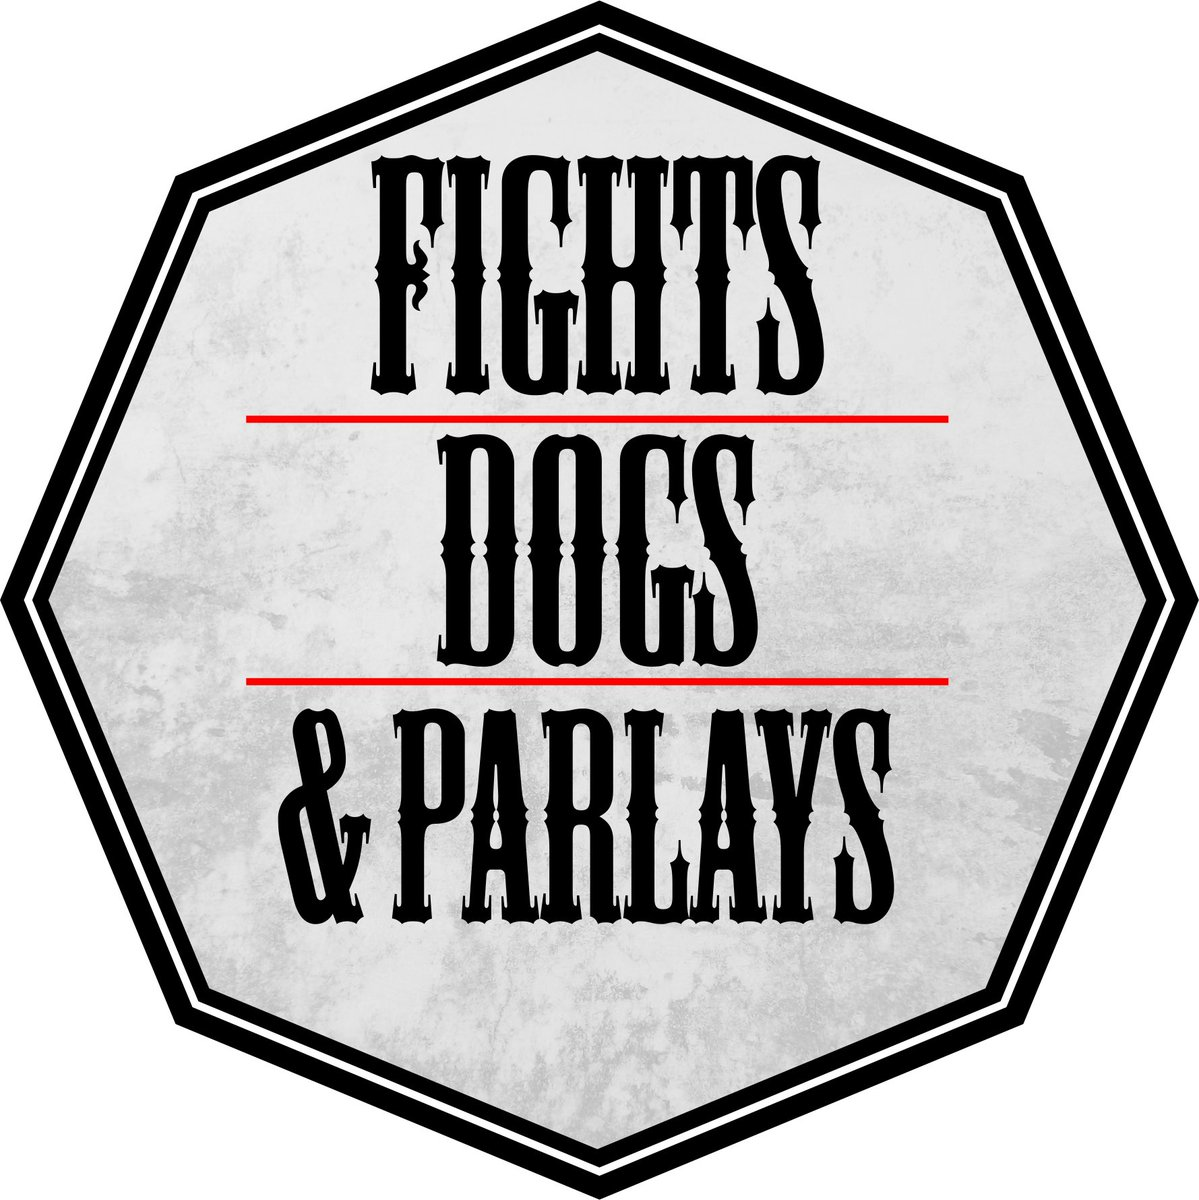 Our Parlay hit again this week for #UFCSaoPaulo 🤗  If you're not listening to our Fights, Dogs, Parlays segment each week on the pod:  YUH MISSING OUT 🤑🤑🤑  #UFC #UFCMoscow #ufc245 #UFCgambling #GamblingTwitter #money  #fights #justbleed